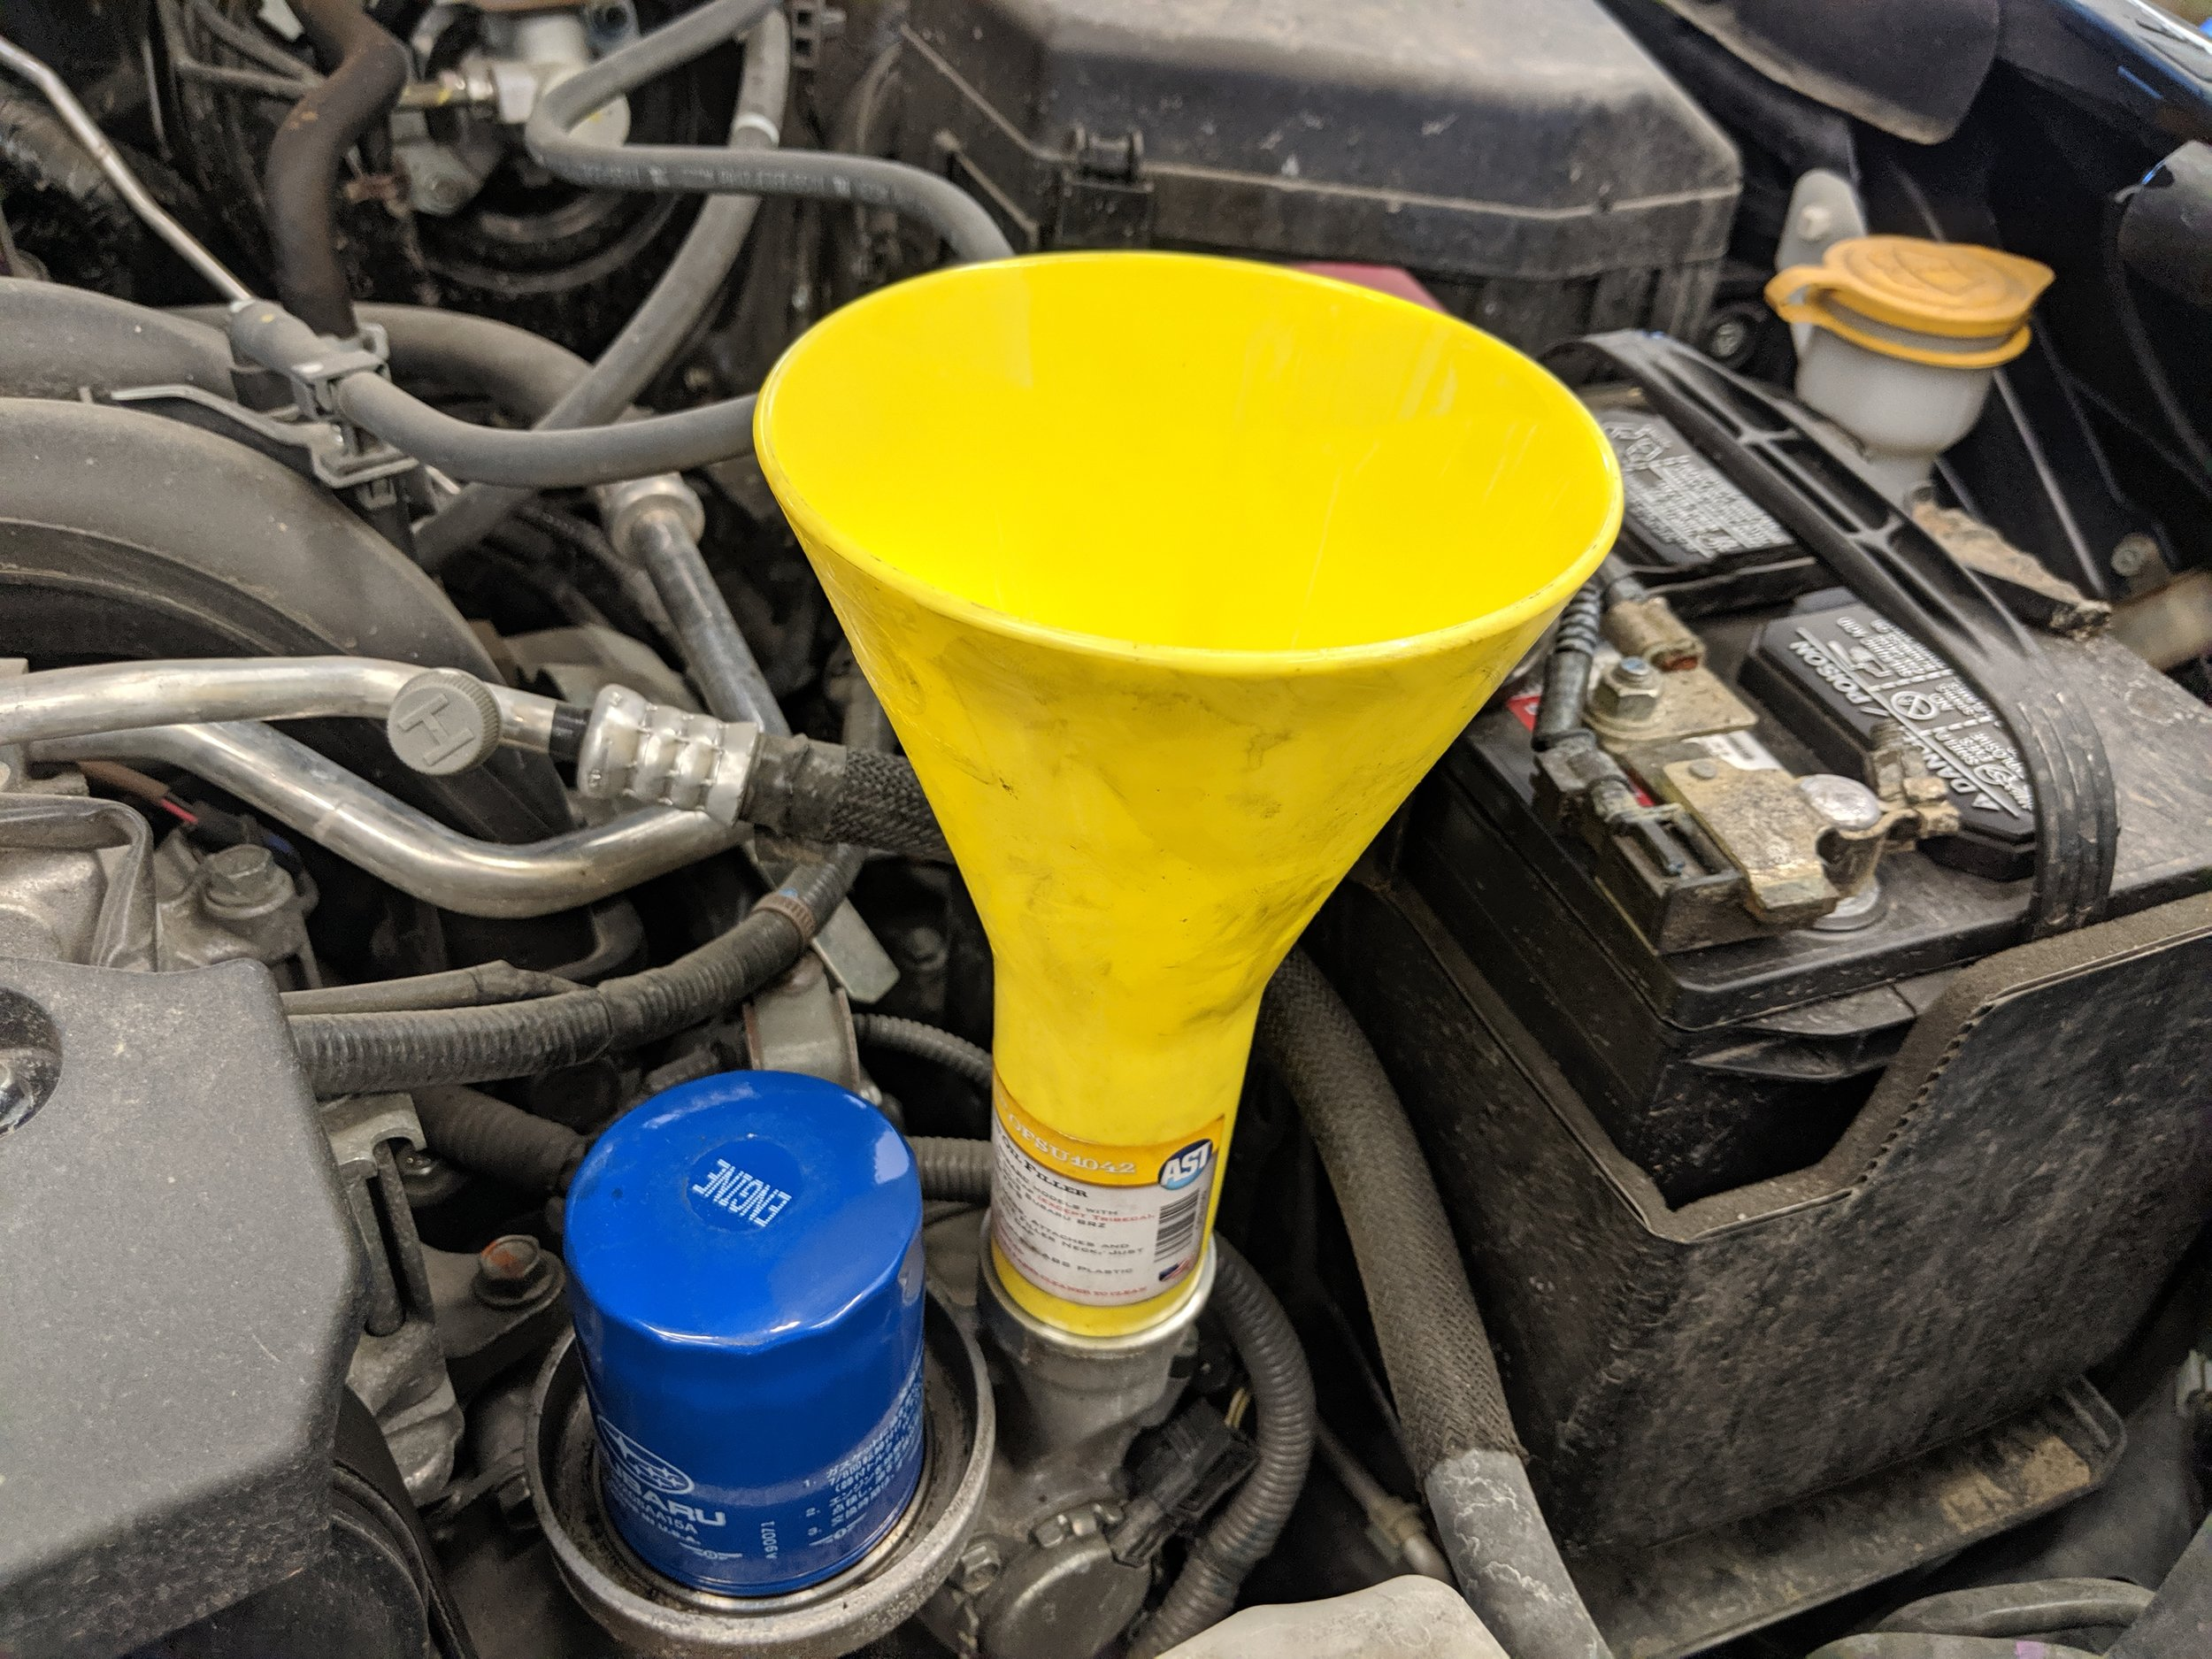 The Assenmacher oil funnel screws right into most Subaru oil fill necks. It allows you to pour that oil quite a bit faster without worrying about spills. Shown on a FA engine.